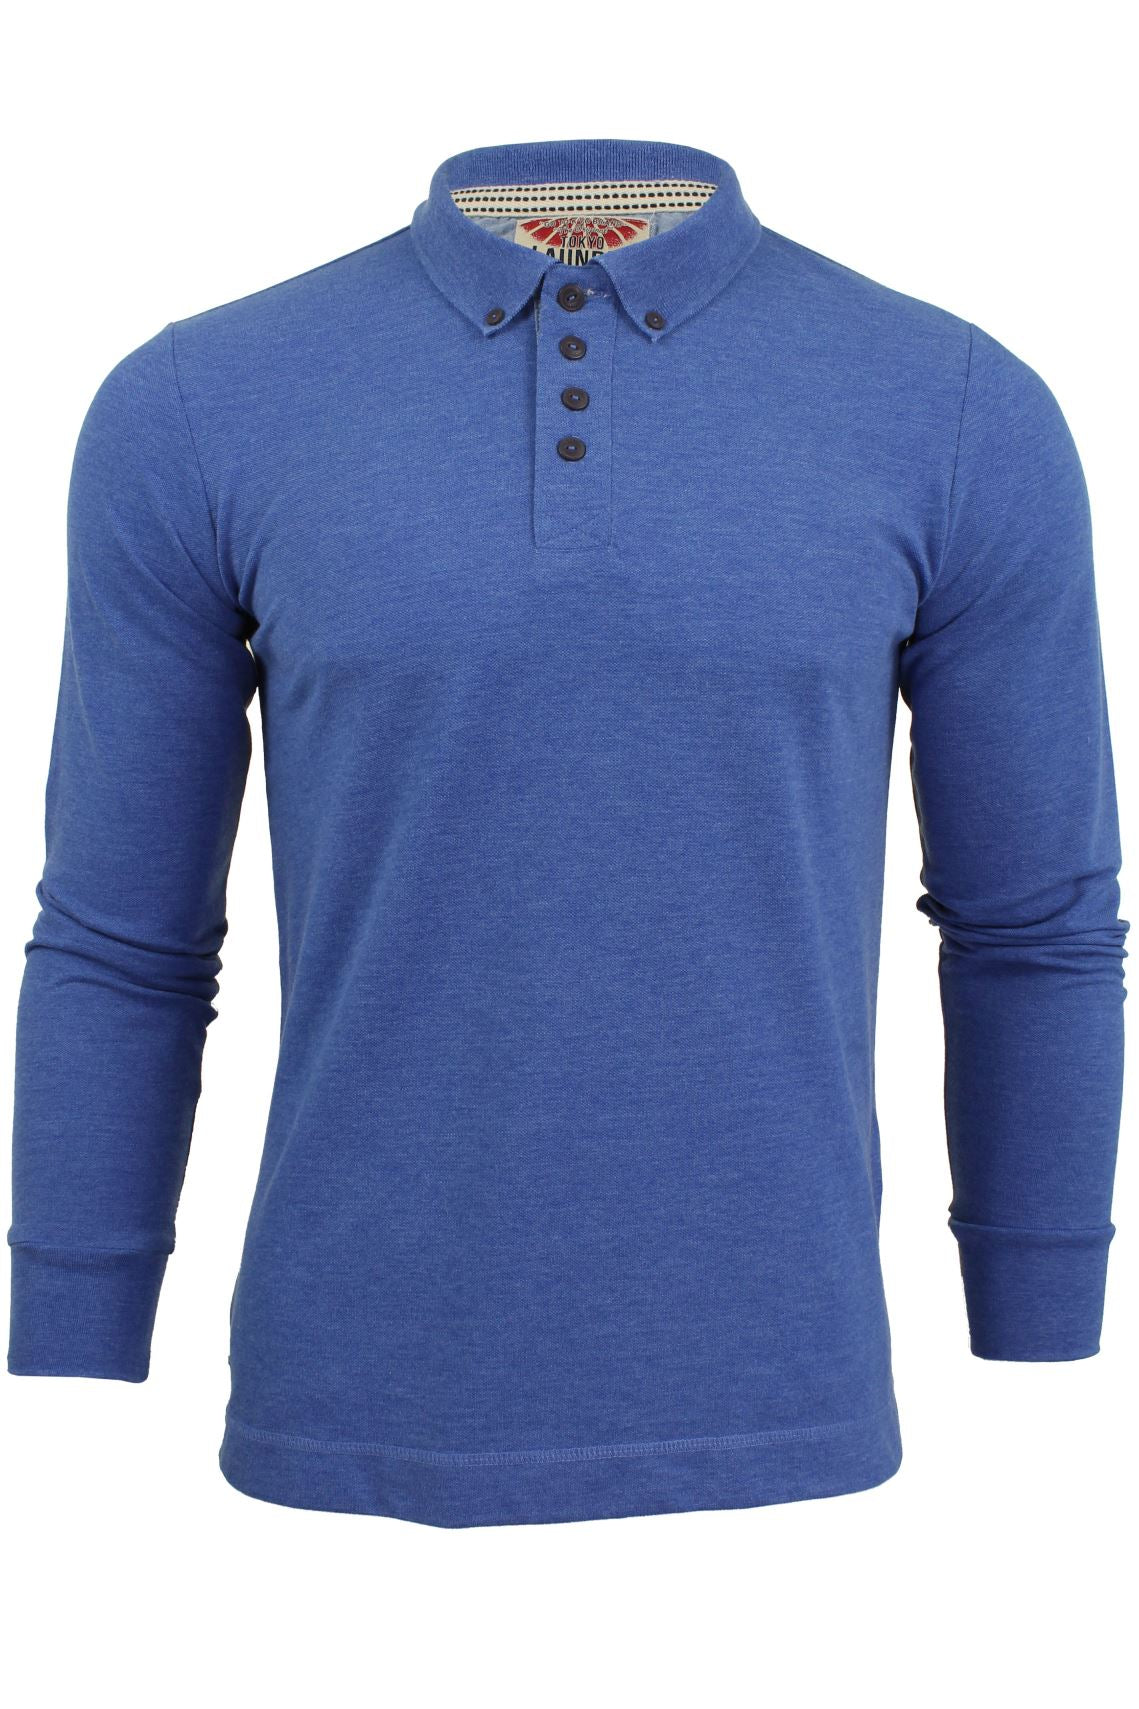 Mens Polo Shirt by Tokyo Laundry 'Lake Nevada'-Main Image